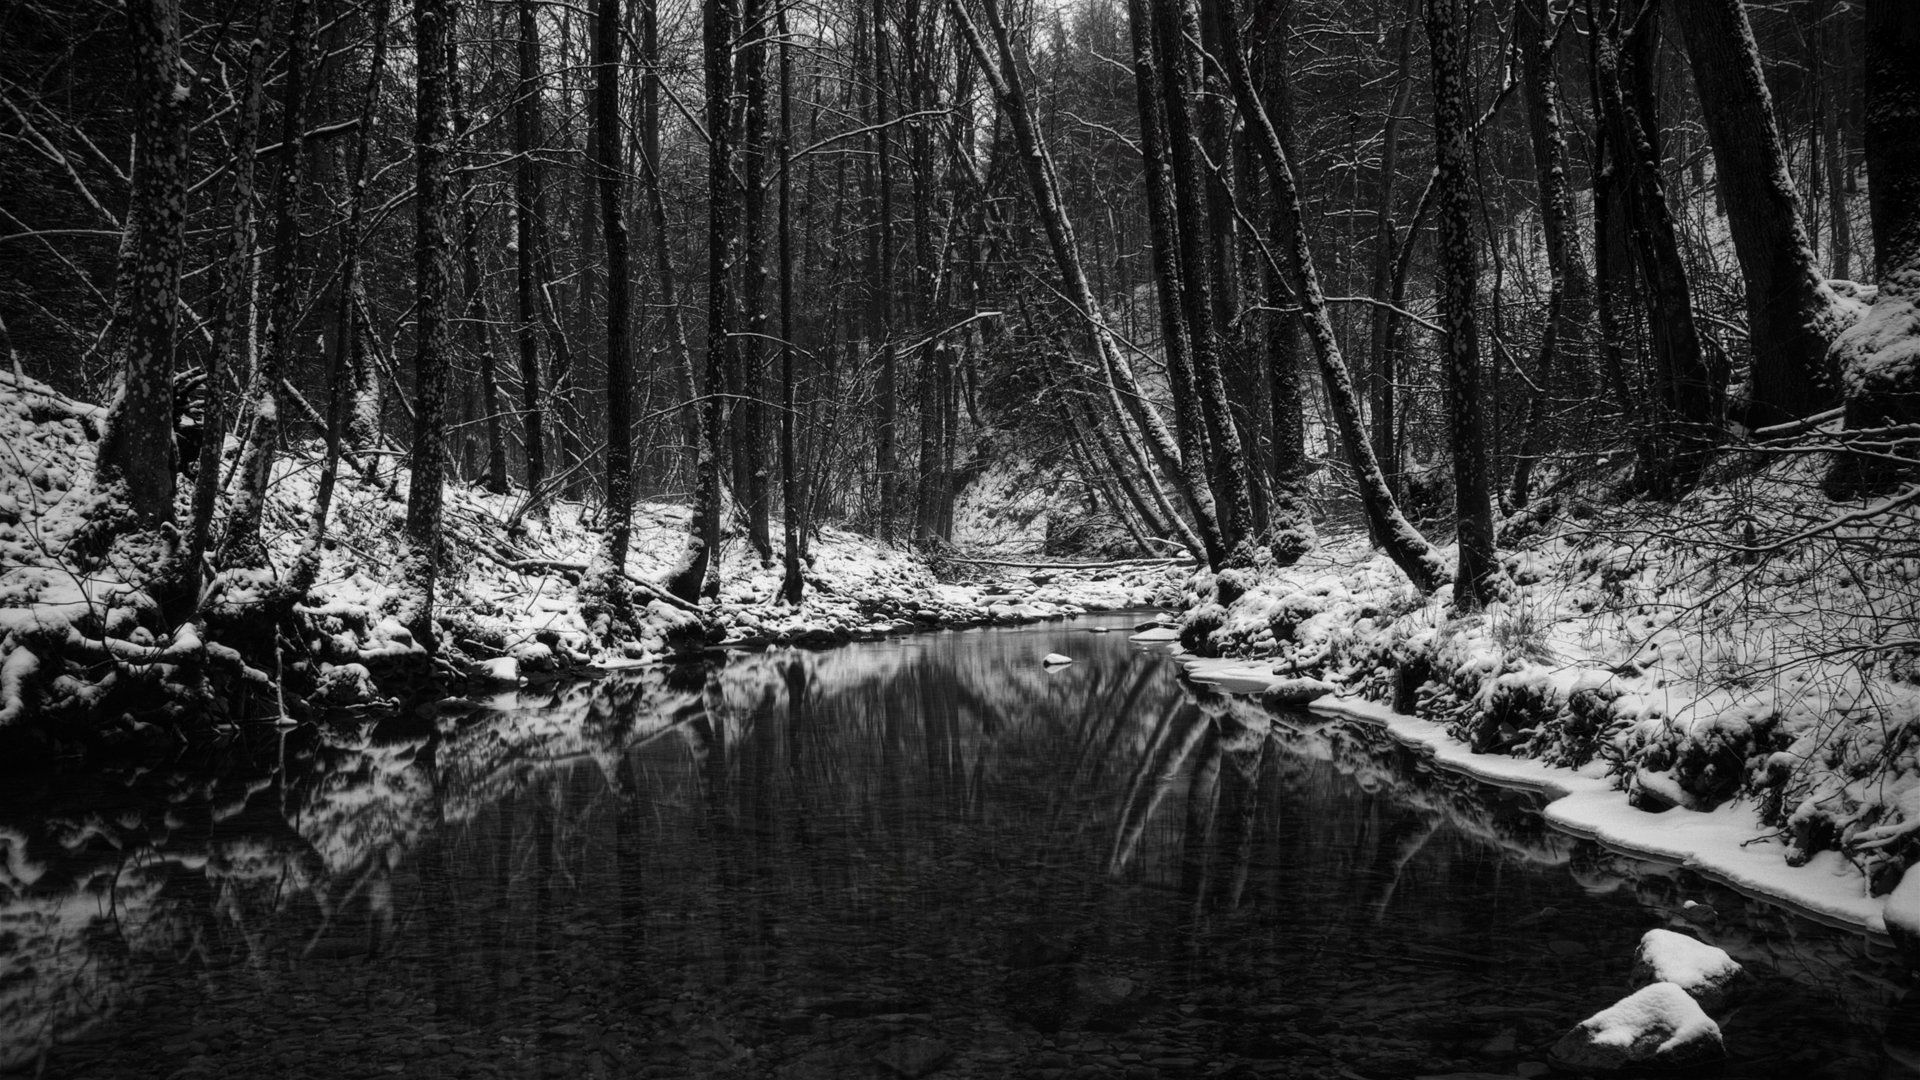 Forest Black And White Wallpapers High Definition Forest Black And White Wallpaper Desktop Dark Wallpaper Winter Wallpaper Black And White Wallpaper